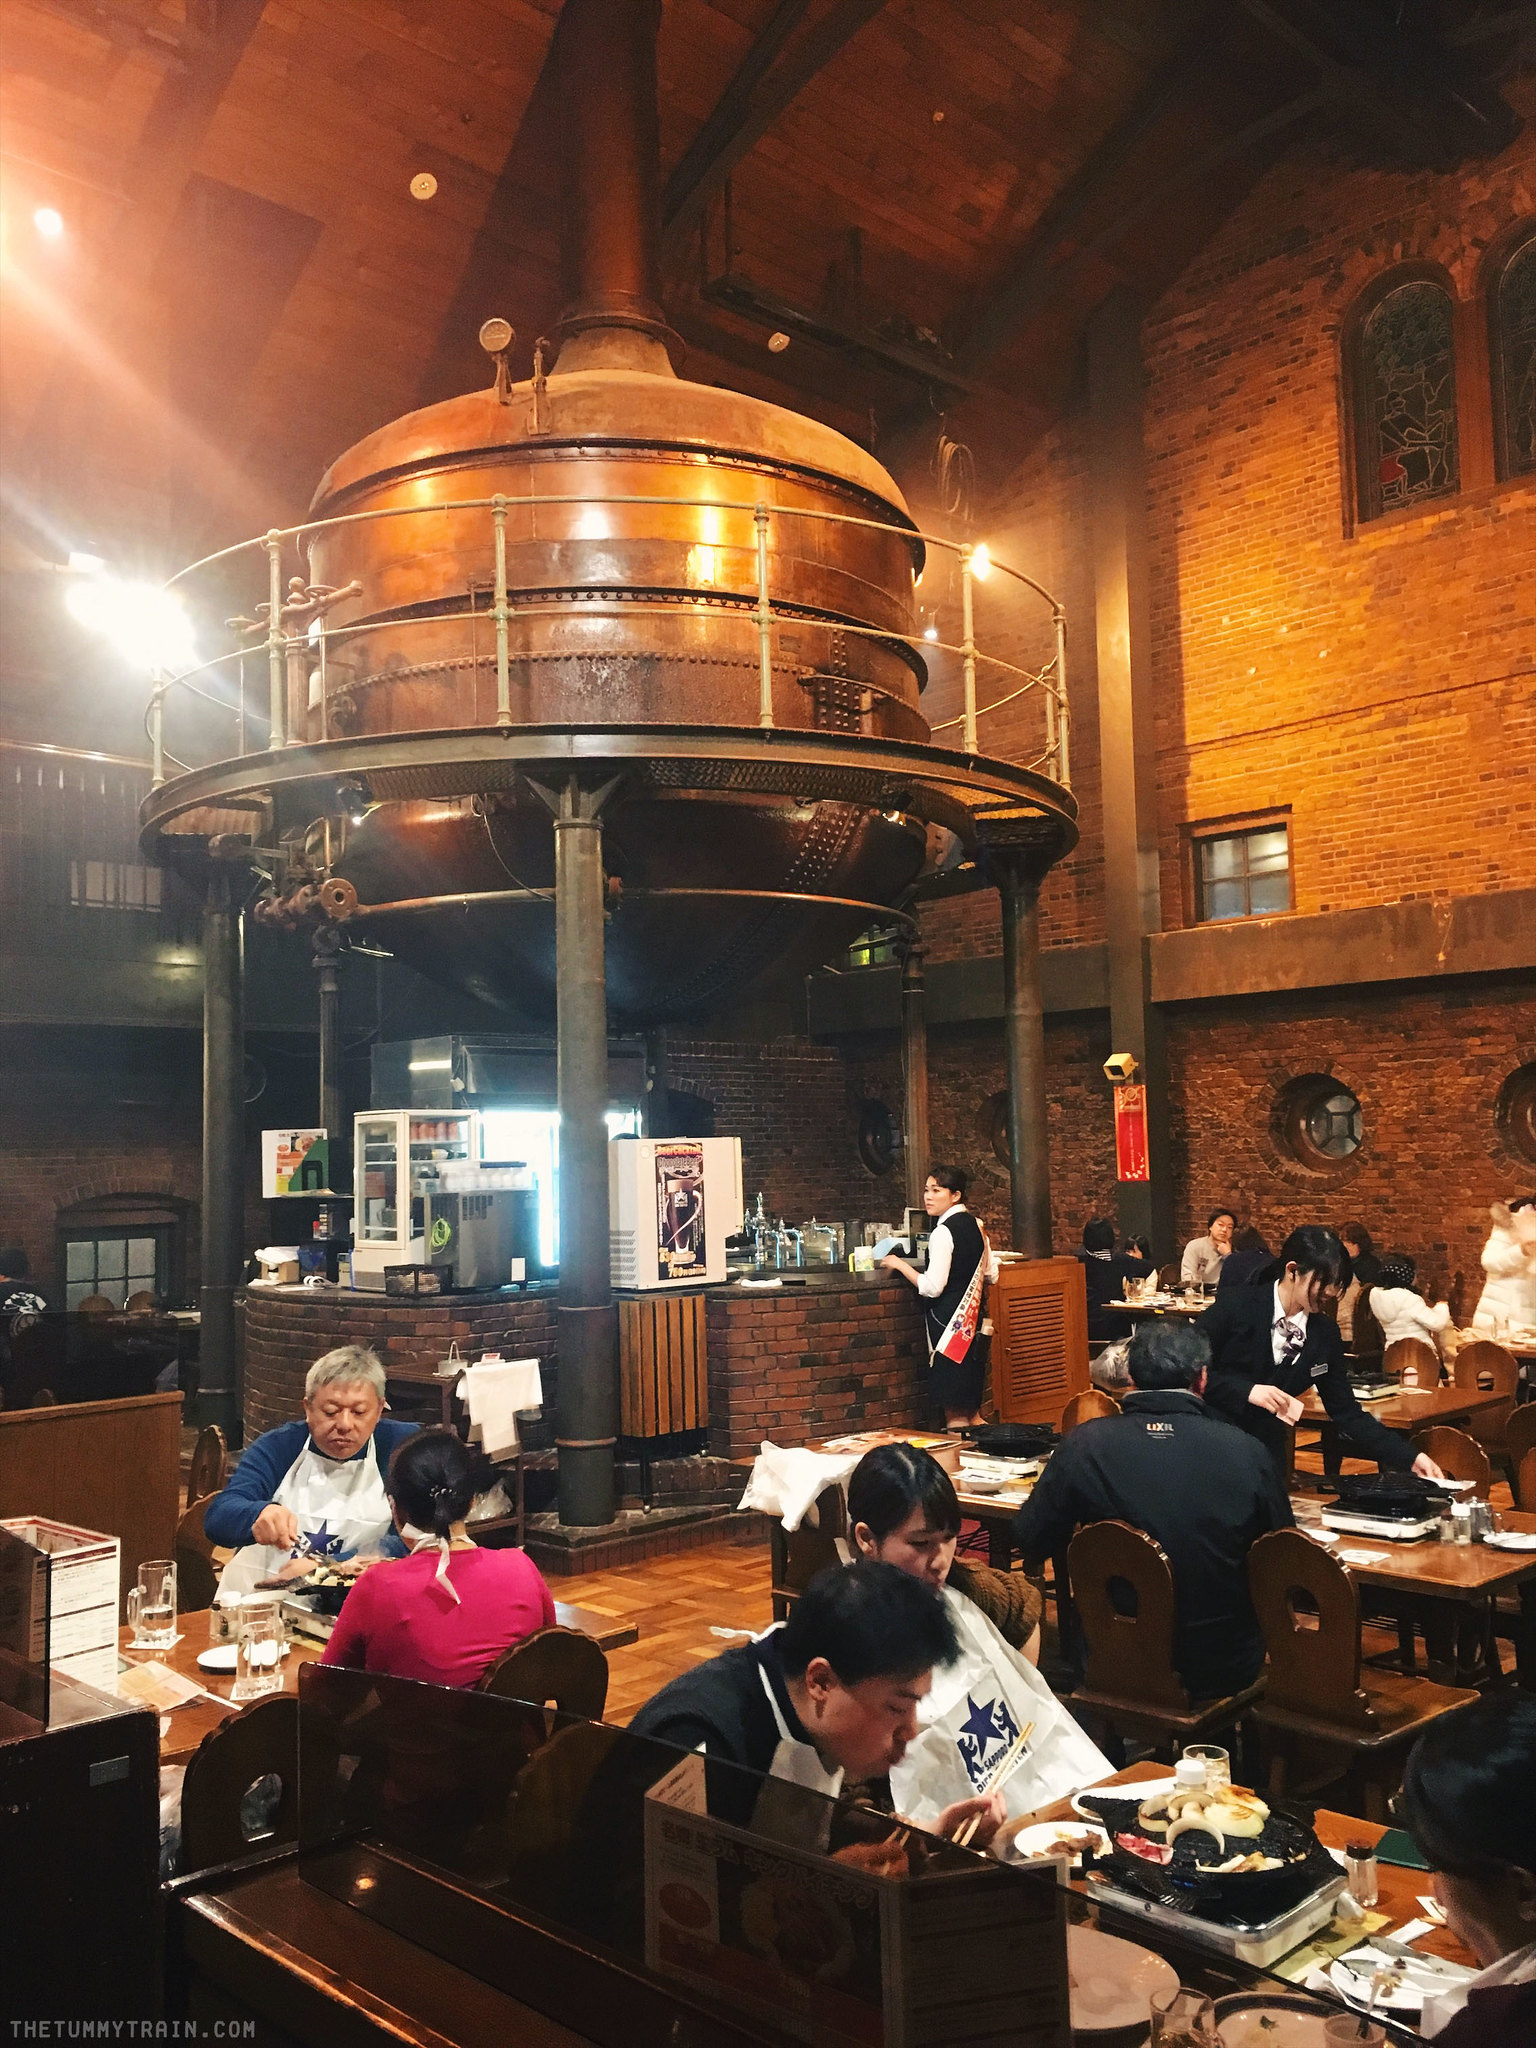 32845808461 4277dbfc92 k - 7 Foodie Experiences To Try for Your Sapporo Adventure